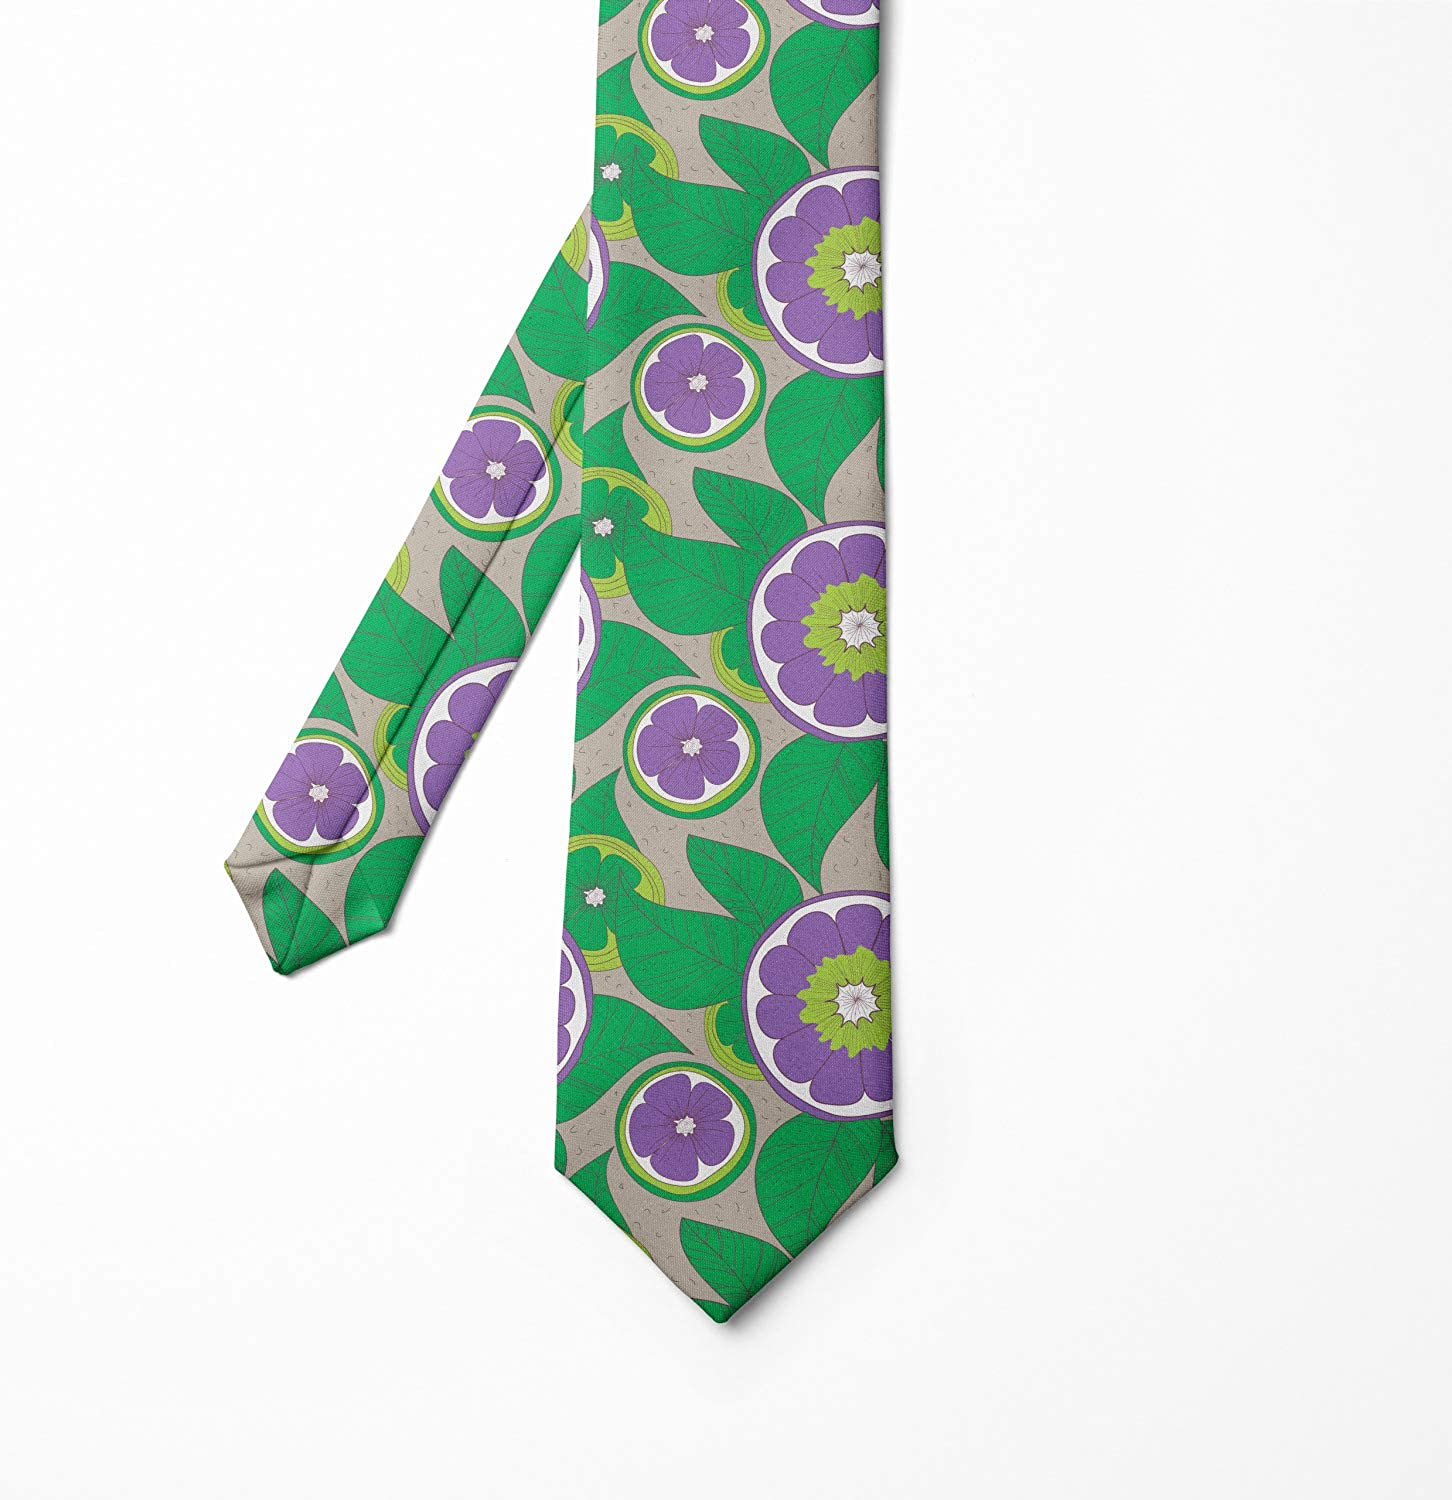 Fern Green Tan Violet Hand Drawing Fruits Leaves 3.7 Ambesonne Necktie